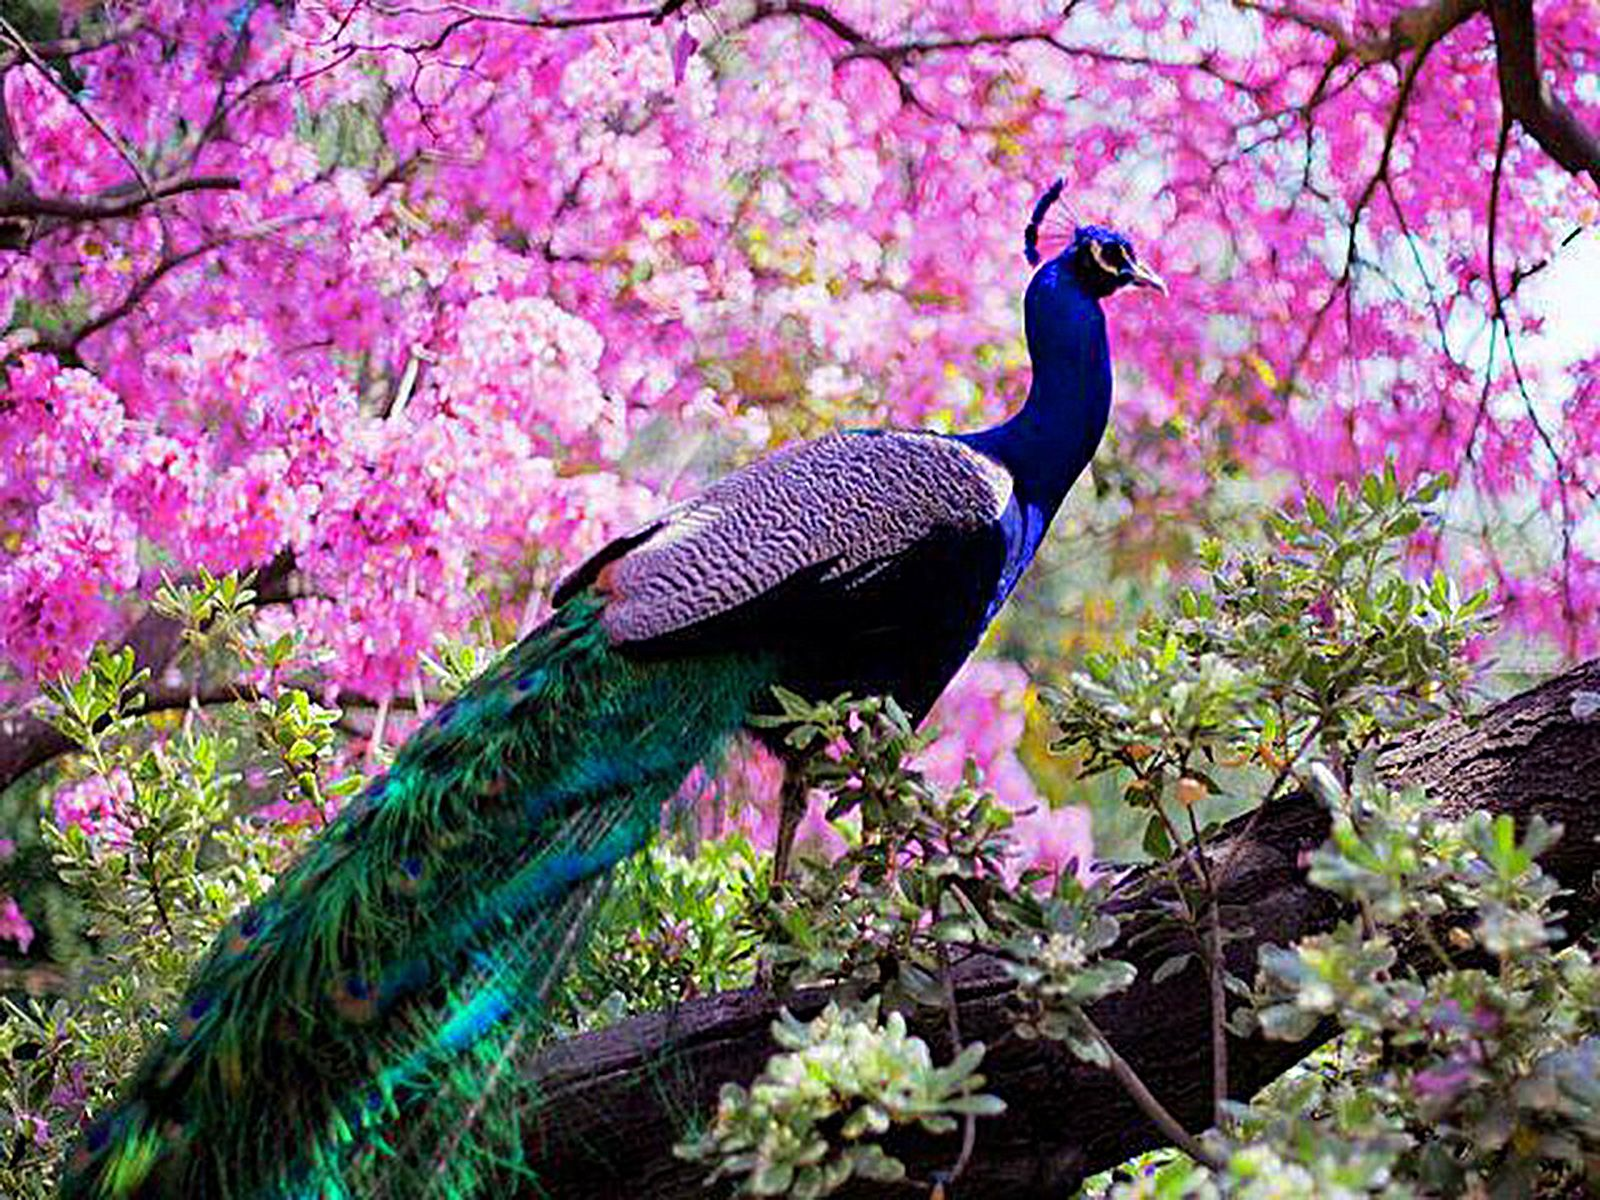 peacock pictures & widescreen hd wallpapers for desktop | my